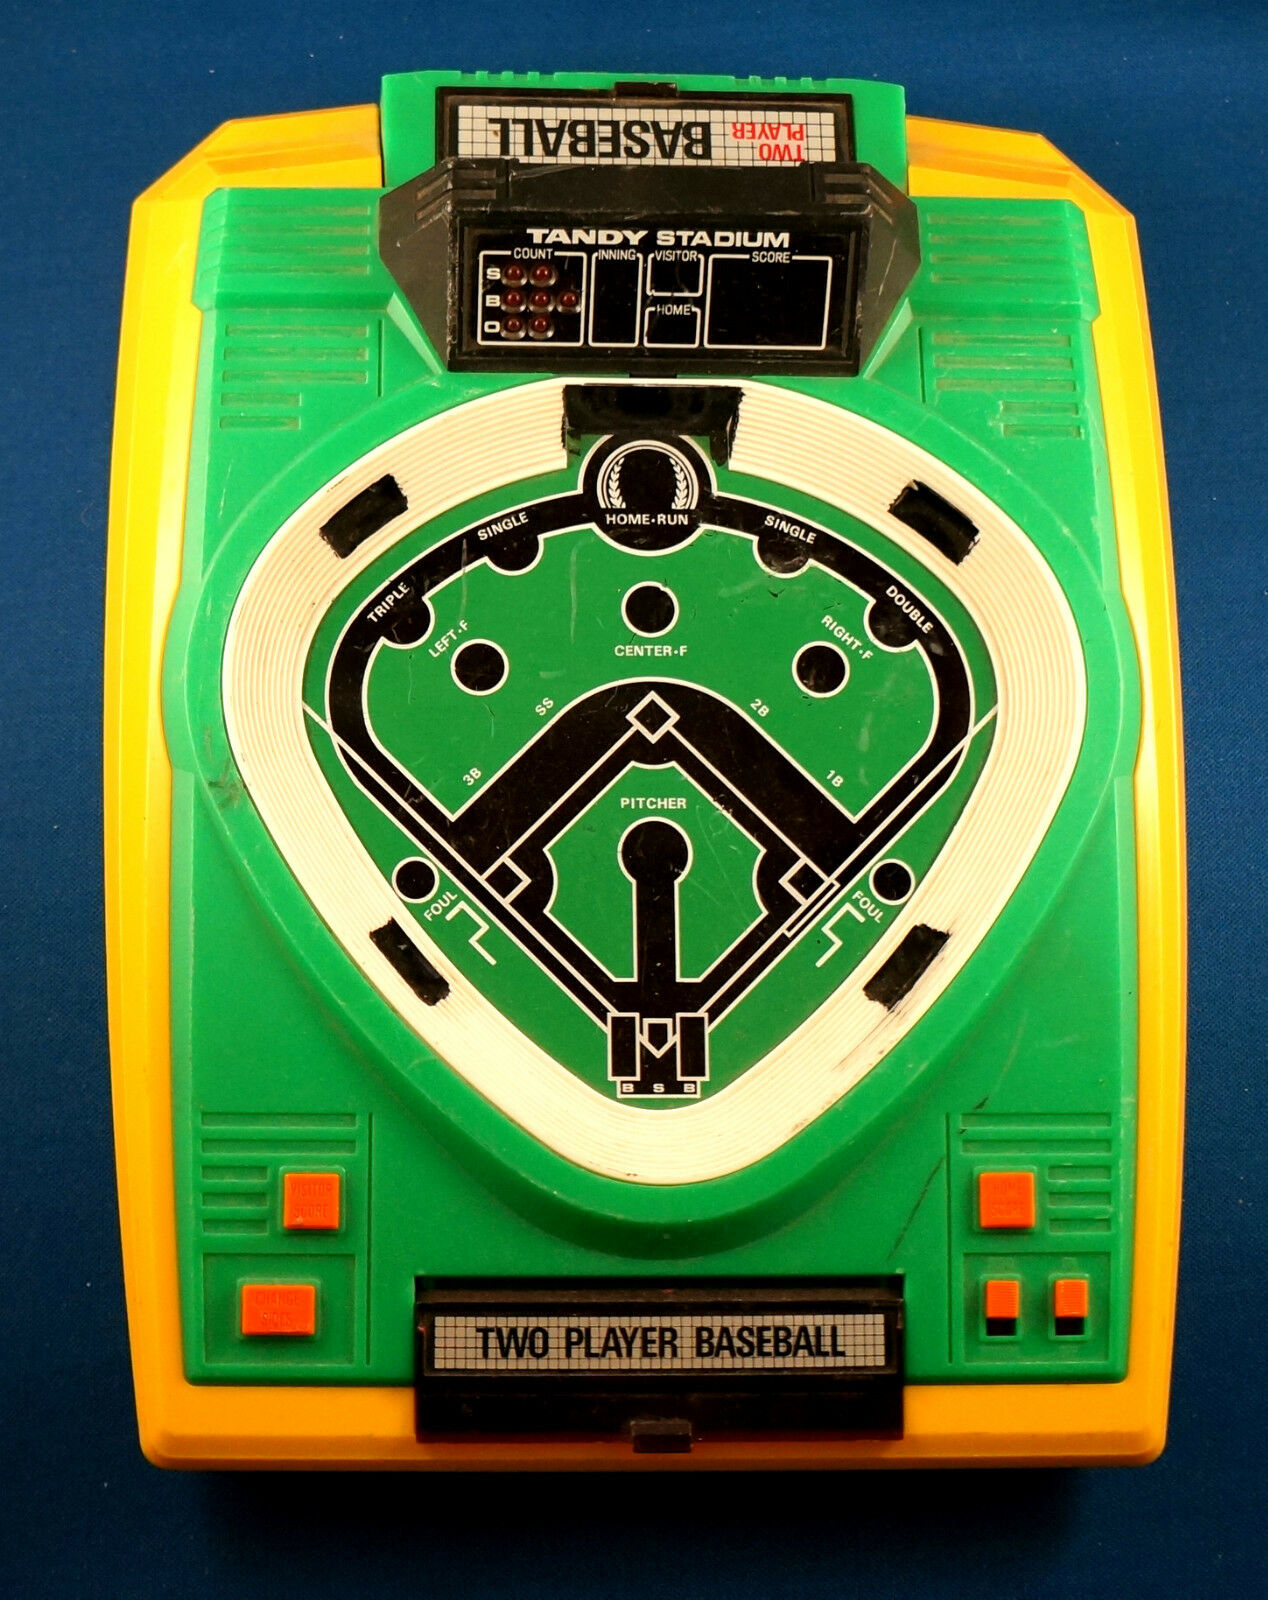 Radio Shack Toys For Boys : Vintage tandy baseball electronic handheld game arcade